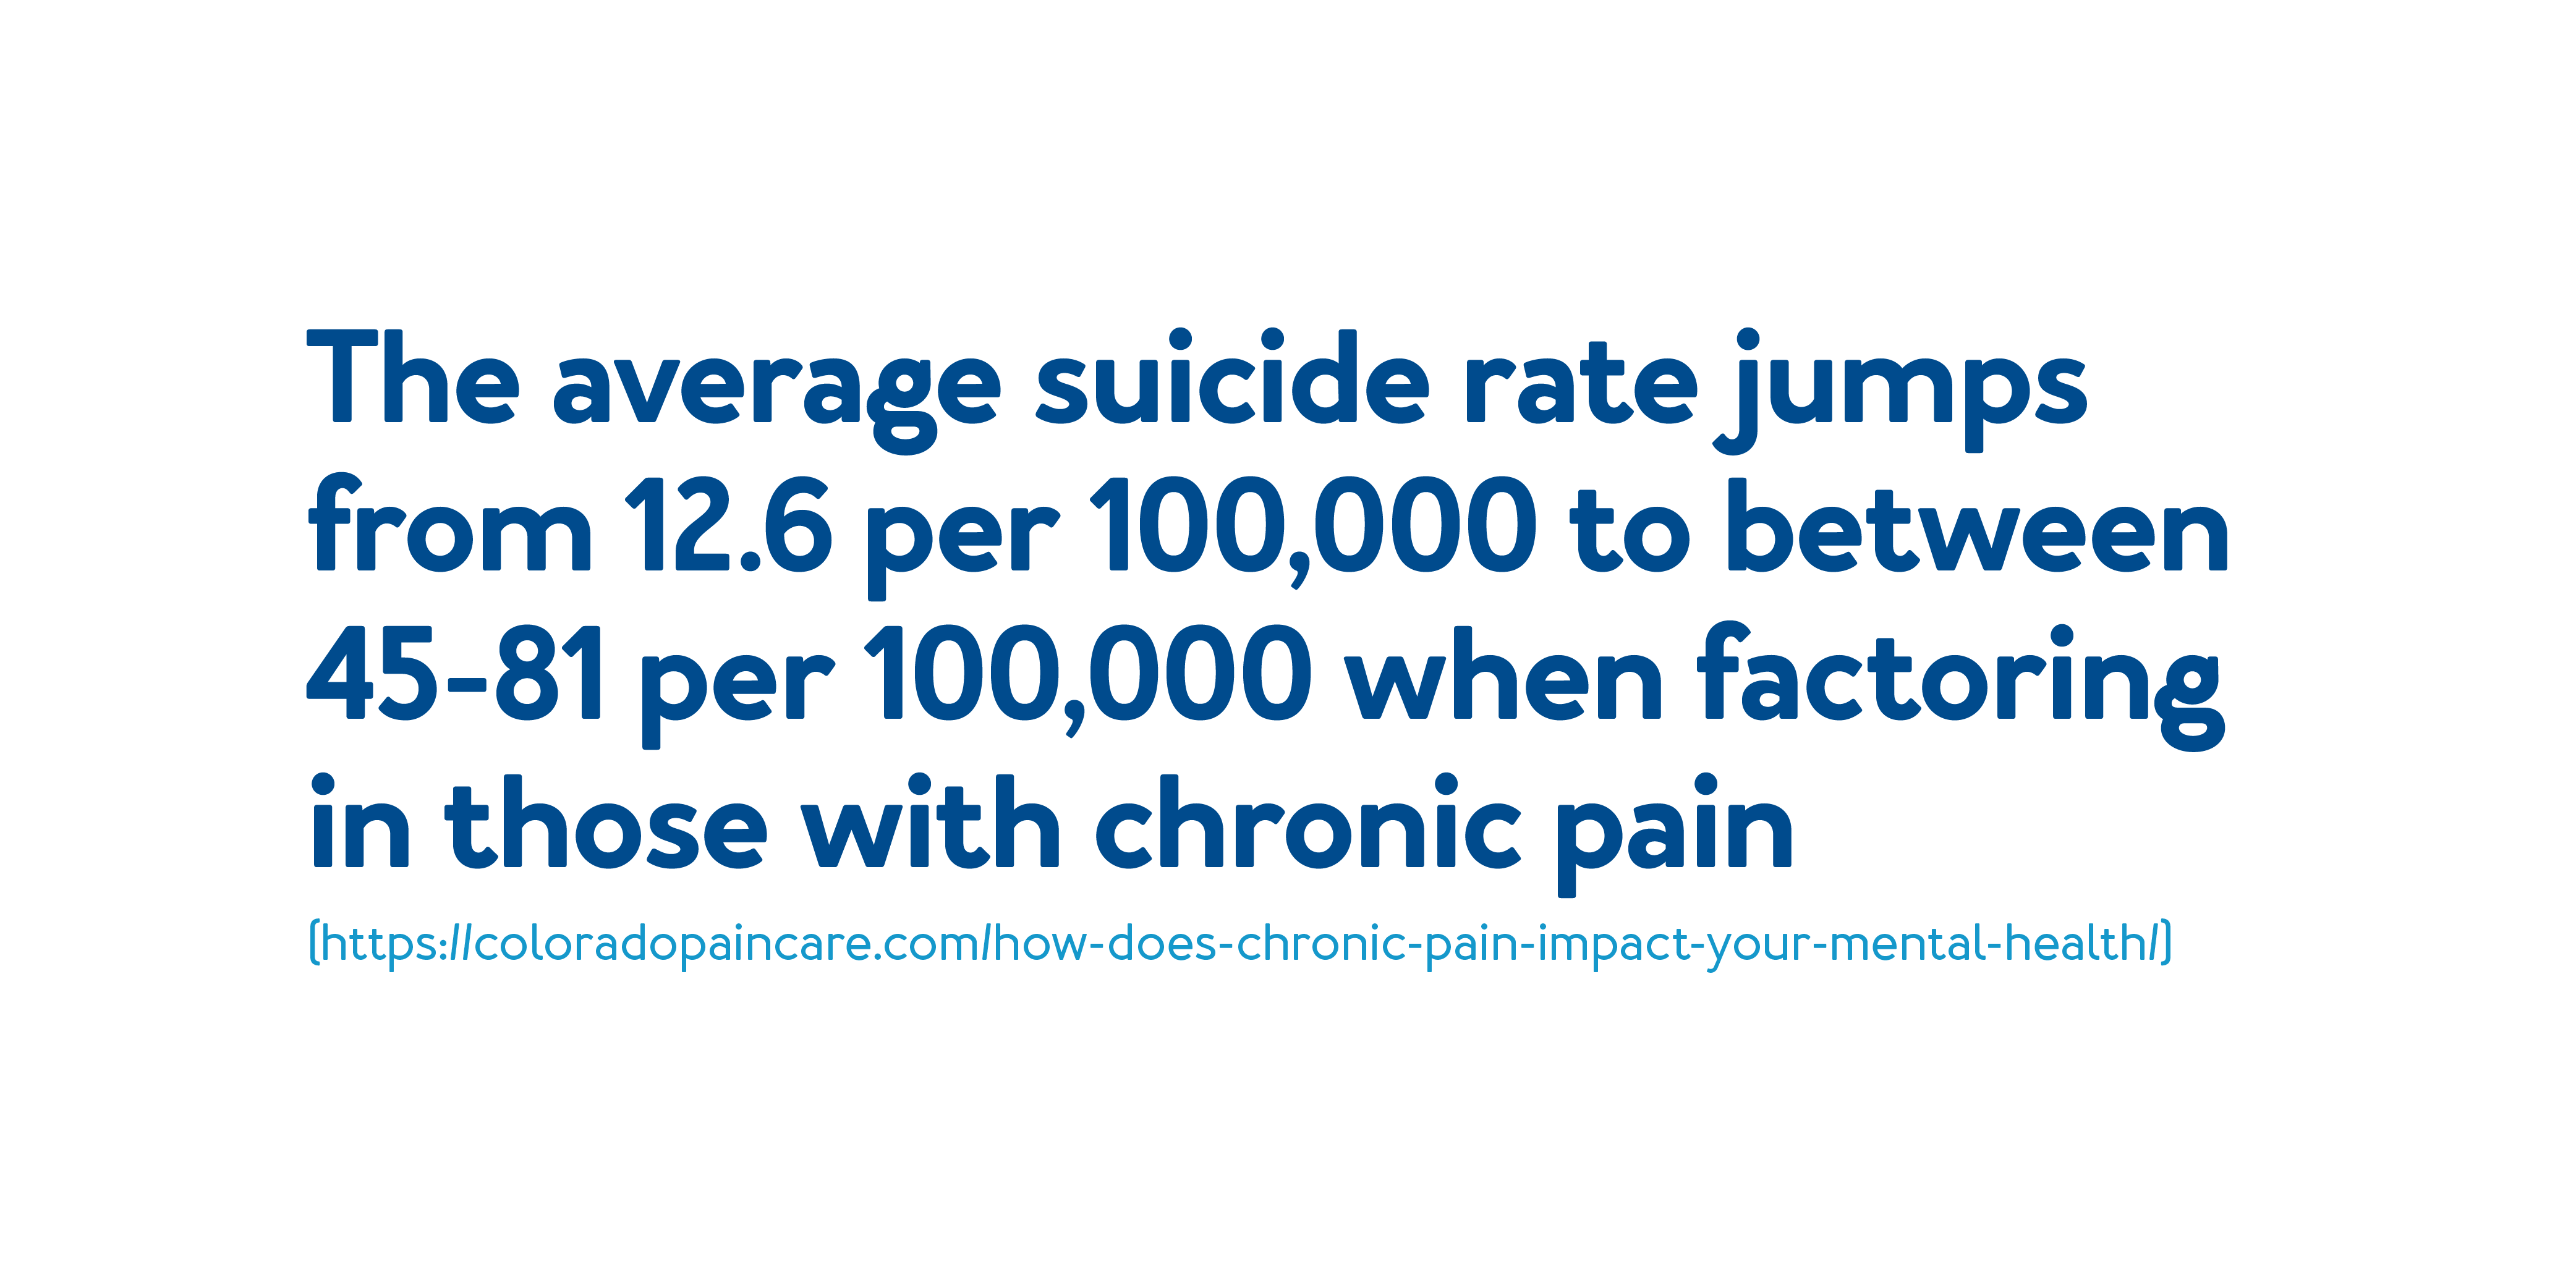 The average suicide rate jumps from 12.6 per 100,000 to 45-81 per person-years 100,000 per person-years when filtering those with chronic pain